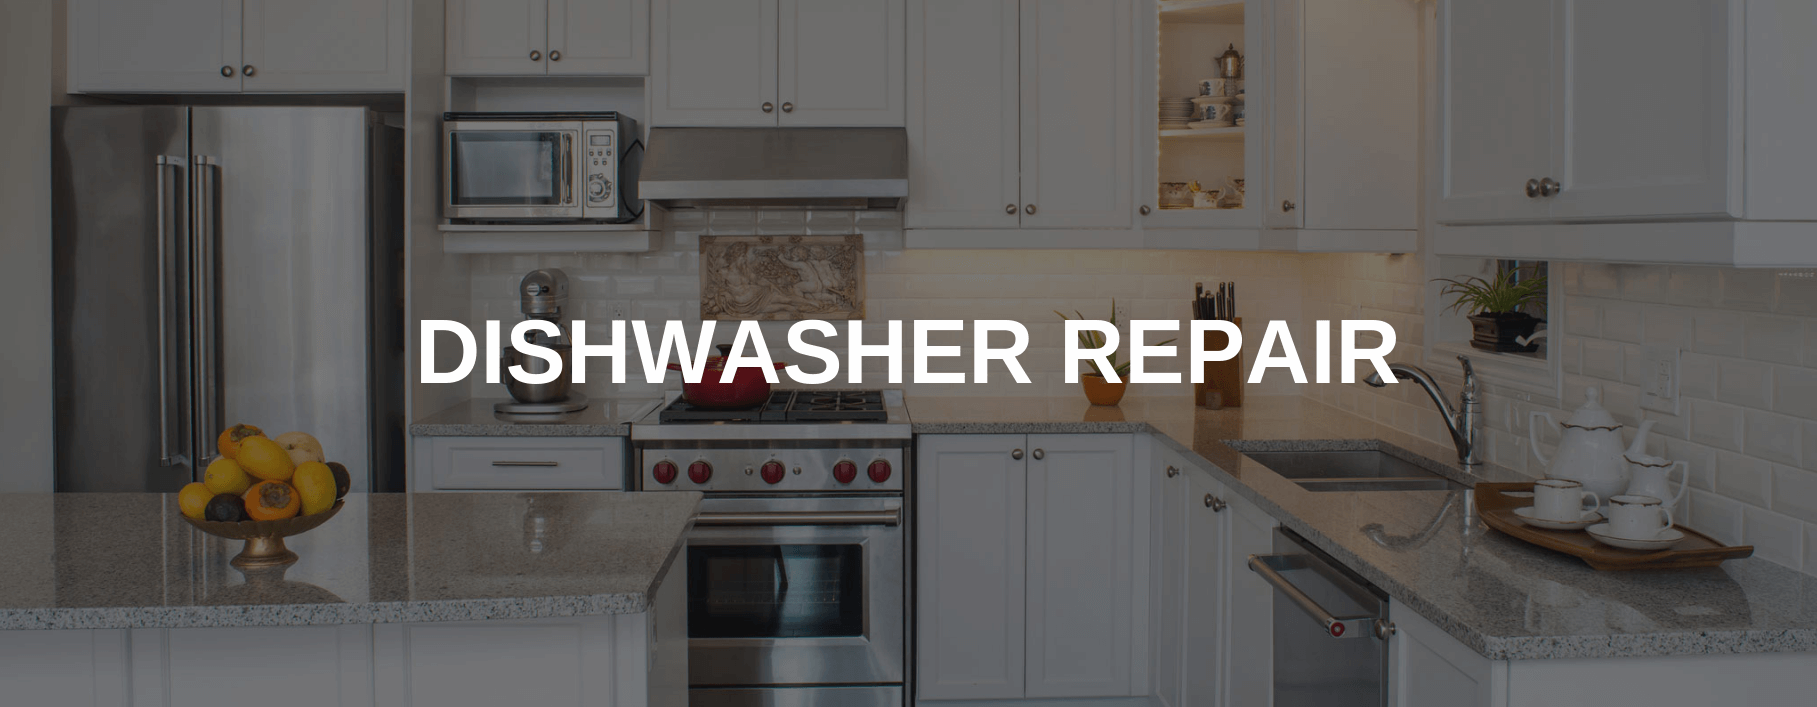 dishwasher repair anaheim